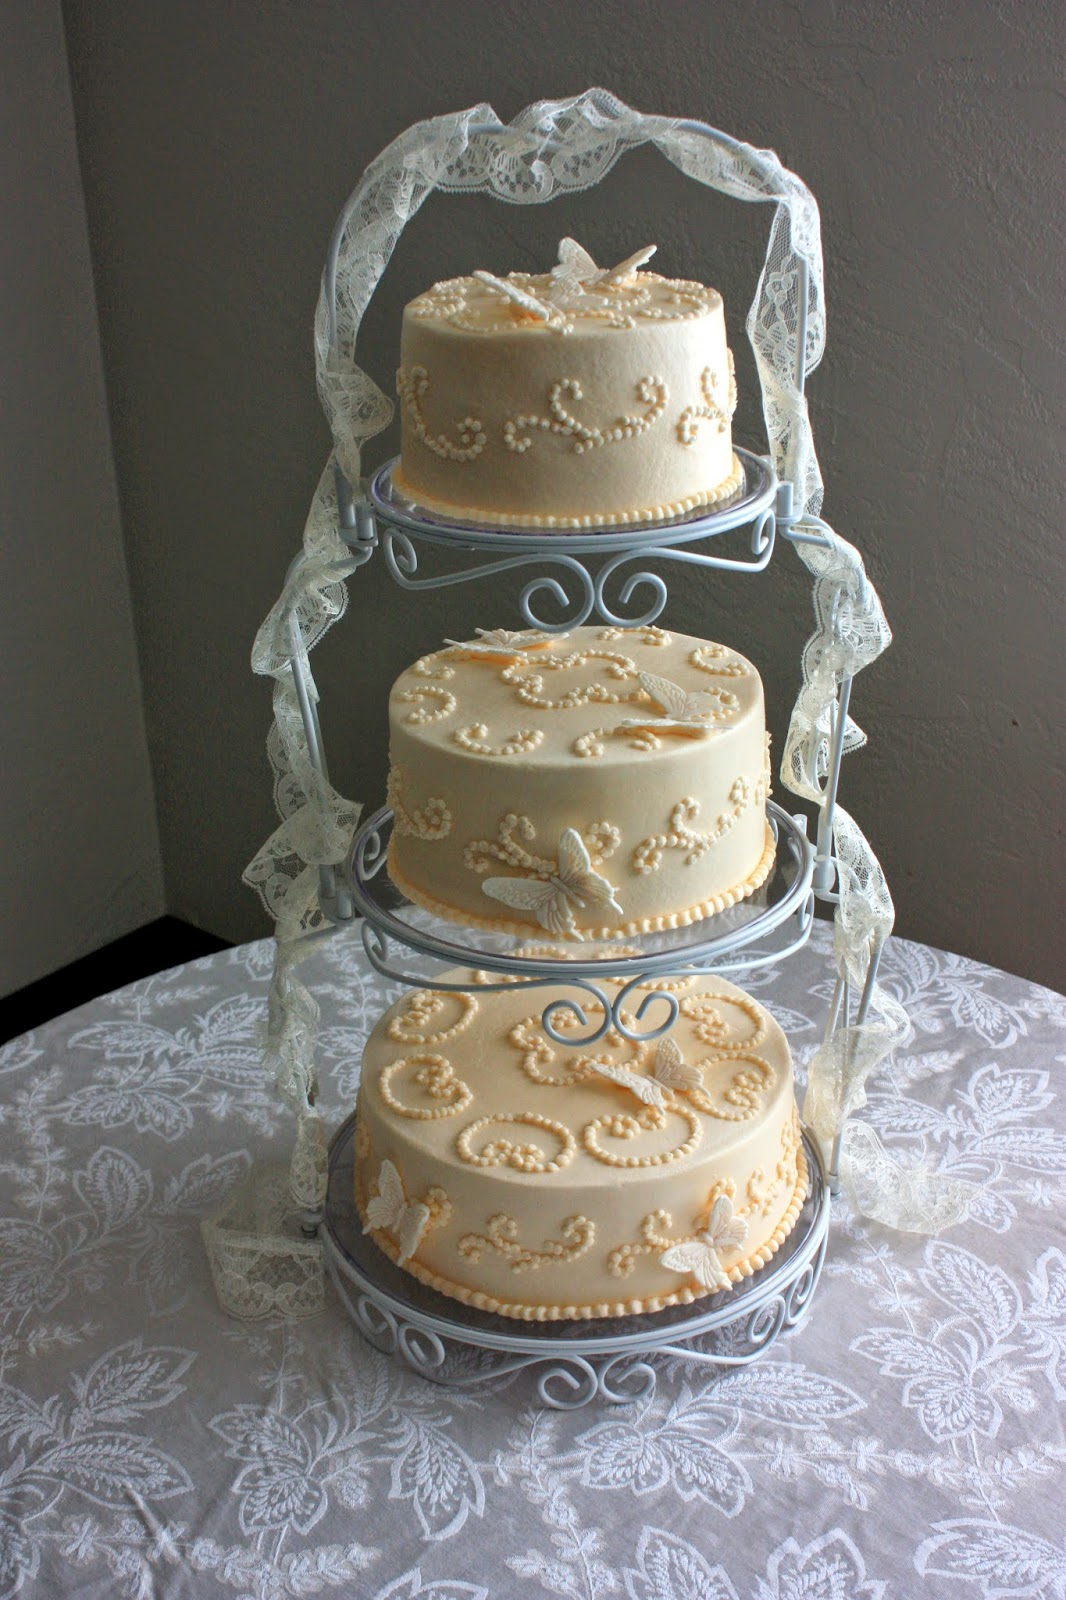 wilton cake stands wedding cakes a garden of cakes july 2014 27499